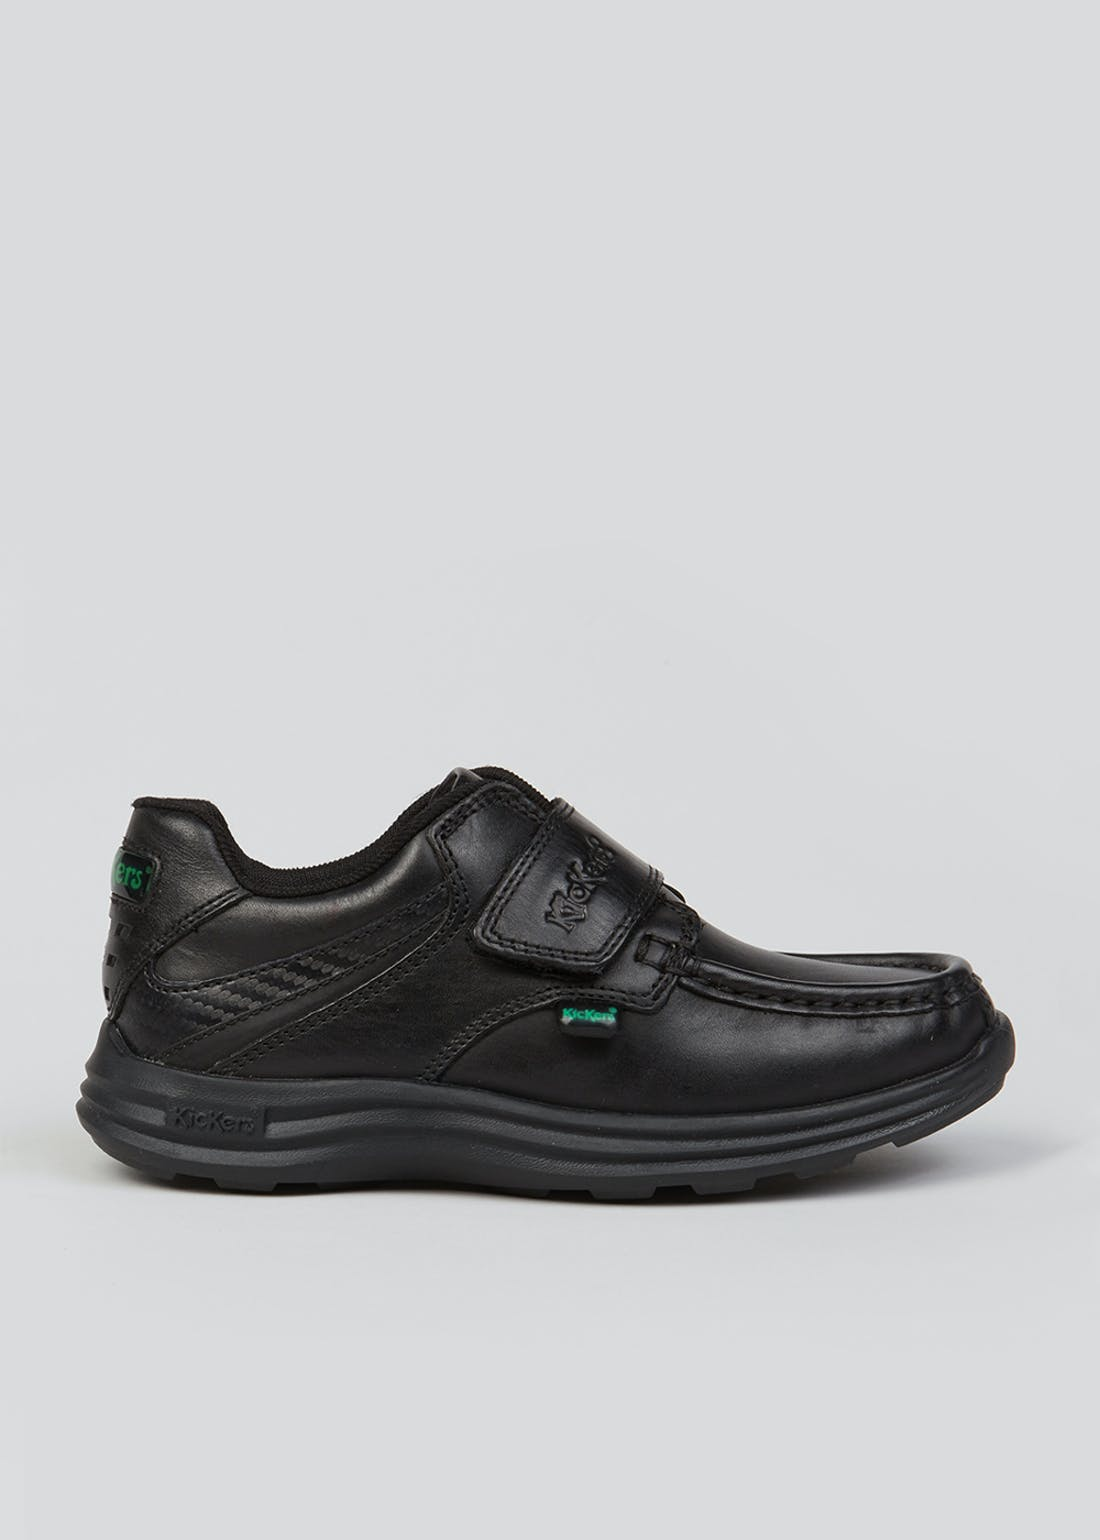 Boys Kickers Black Reasan Strap Shoes (Younger 13-Older 2)